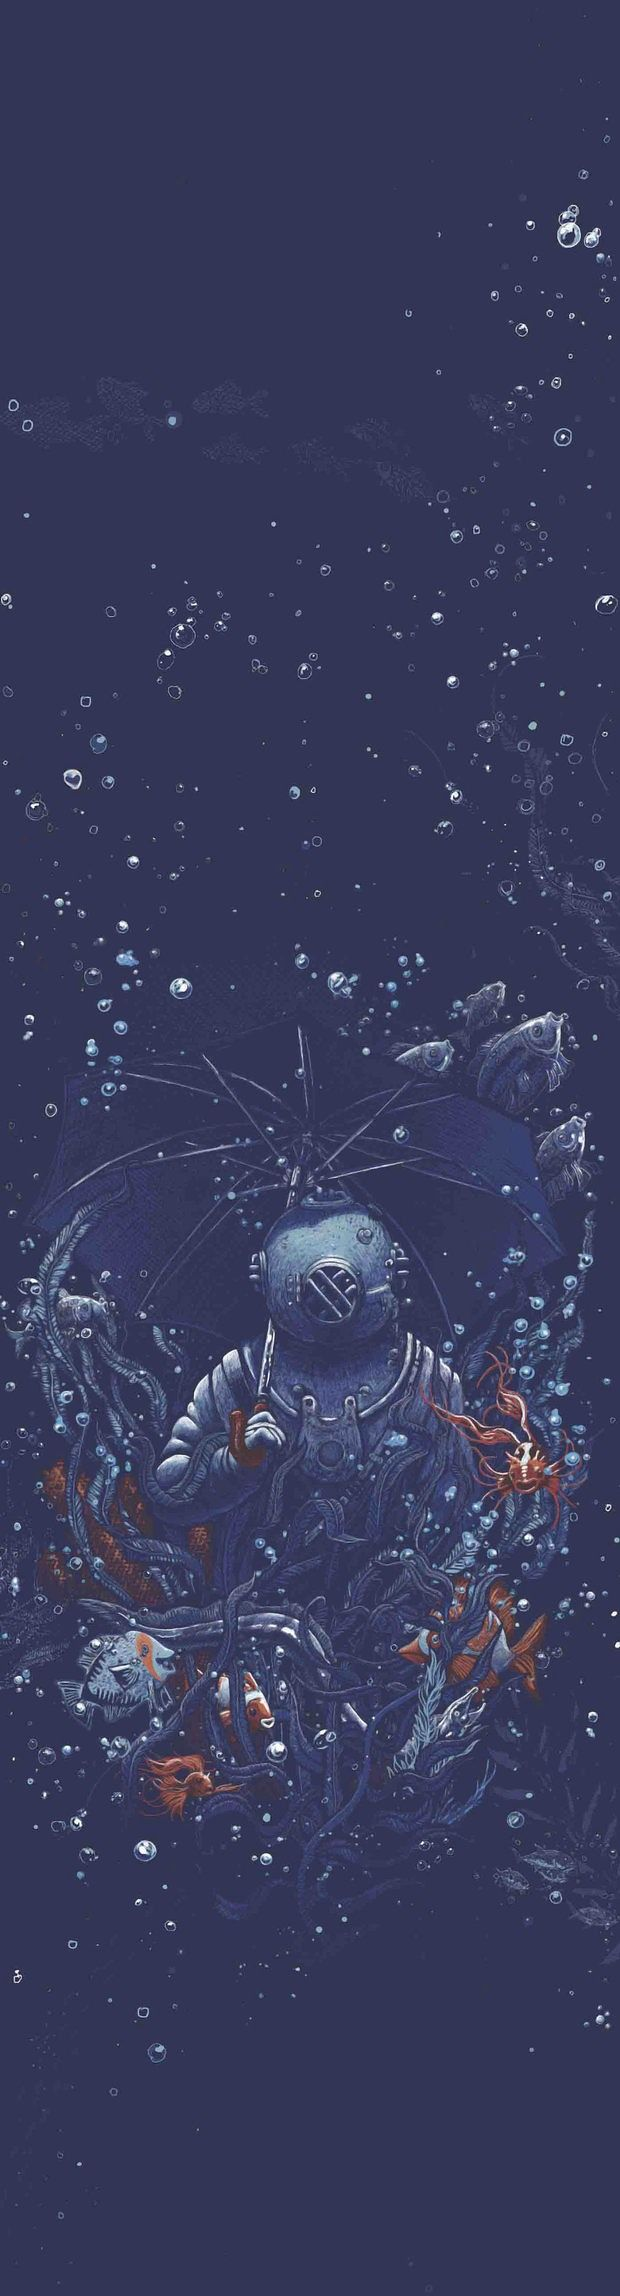 Under the Sea by Georges Le Mercenaire  #illustration  Like what you see?  Follow me: www.JoshCampbellPhoto.com